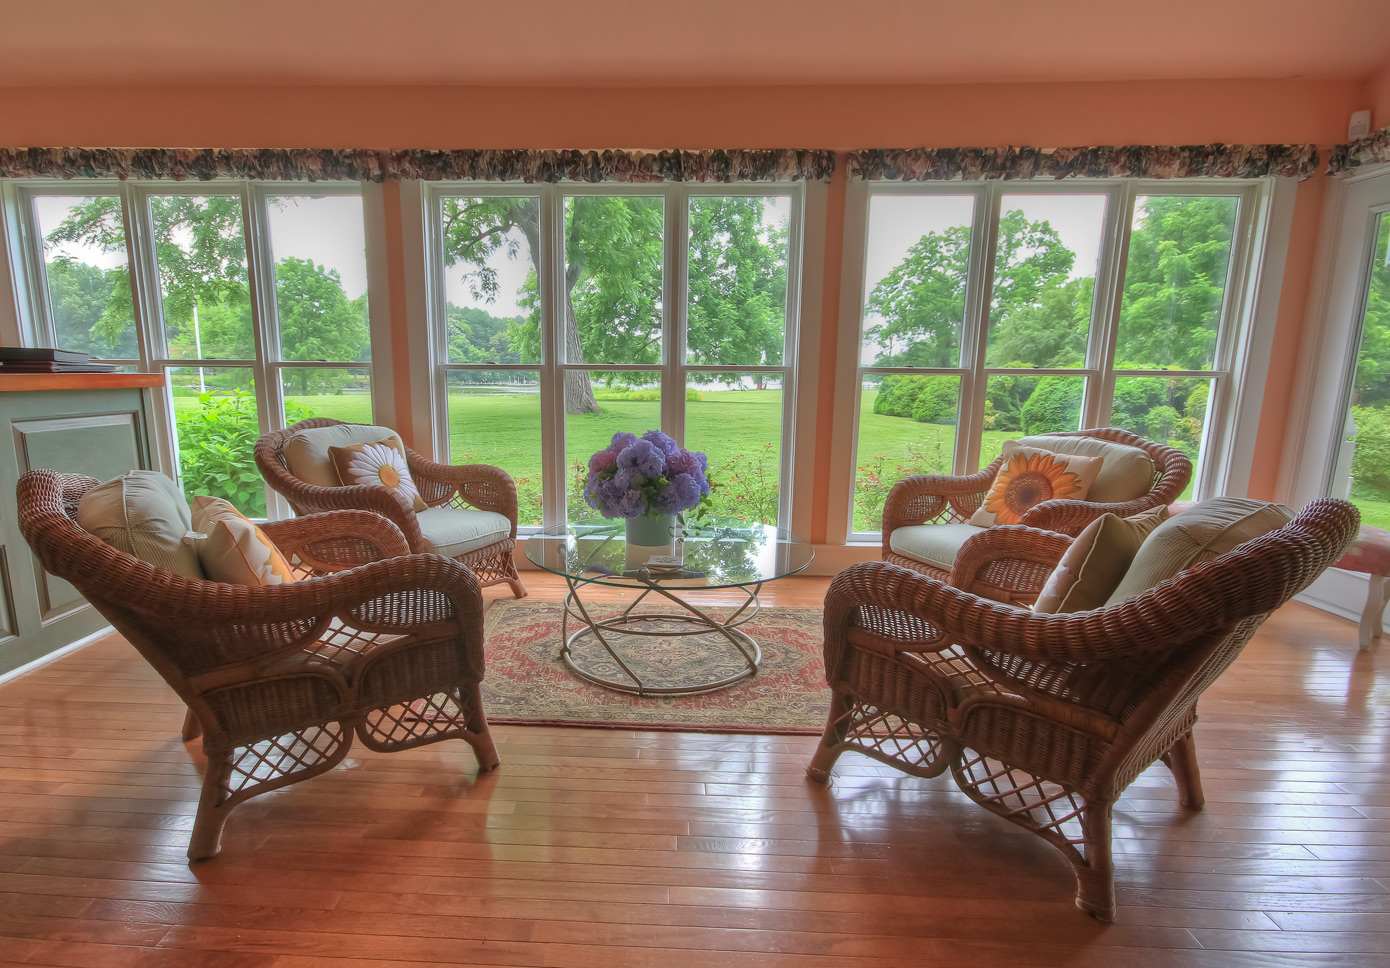 four wicker chairs around glass table with view of water off in distance